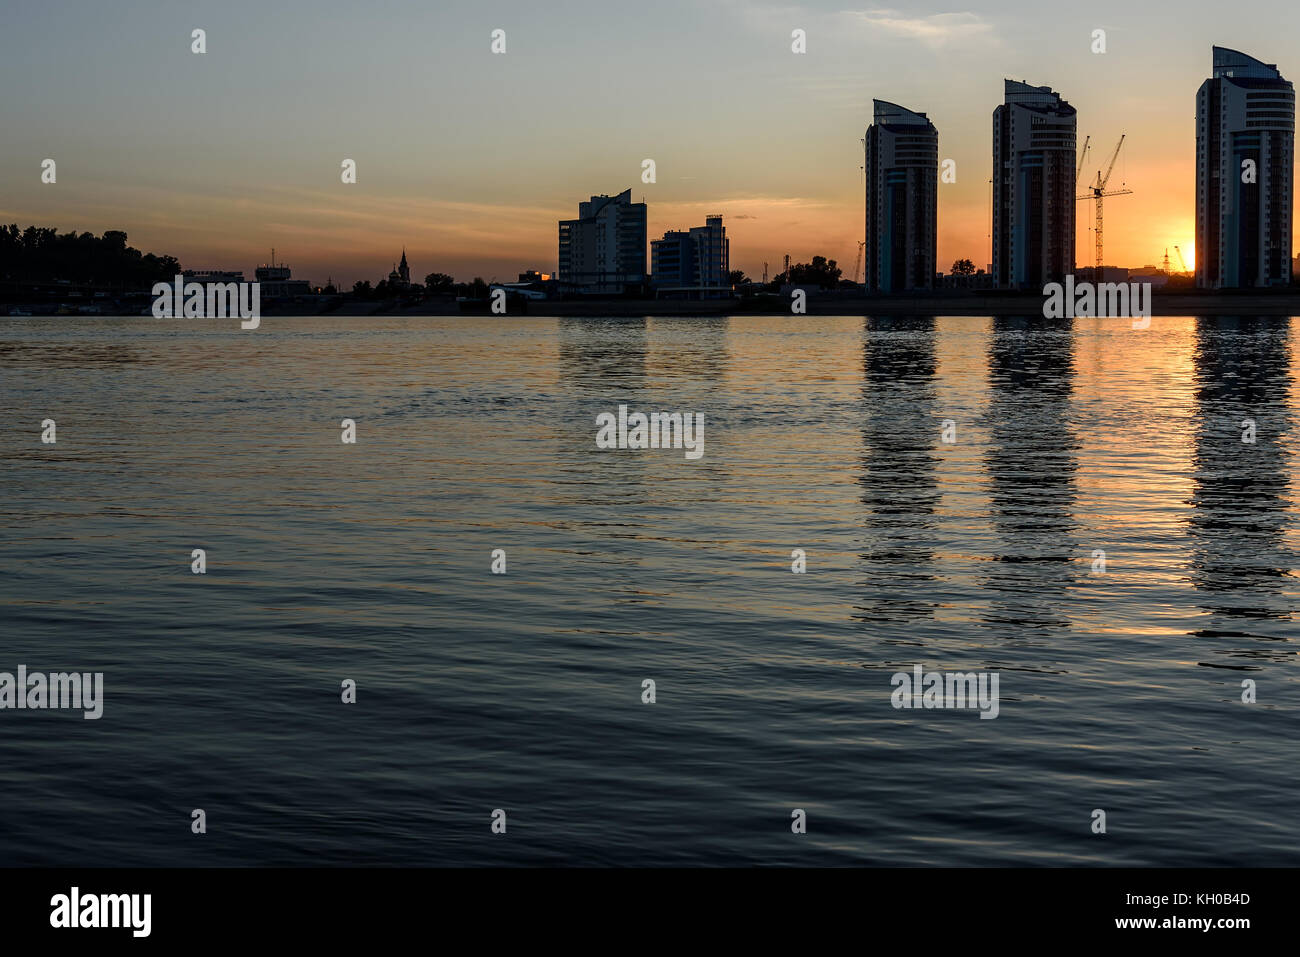 The picturesque landscape of the night city and the river with the reflections of tall houses on the water against - Stock Image